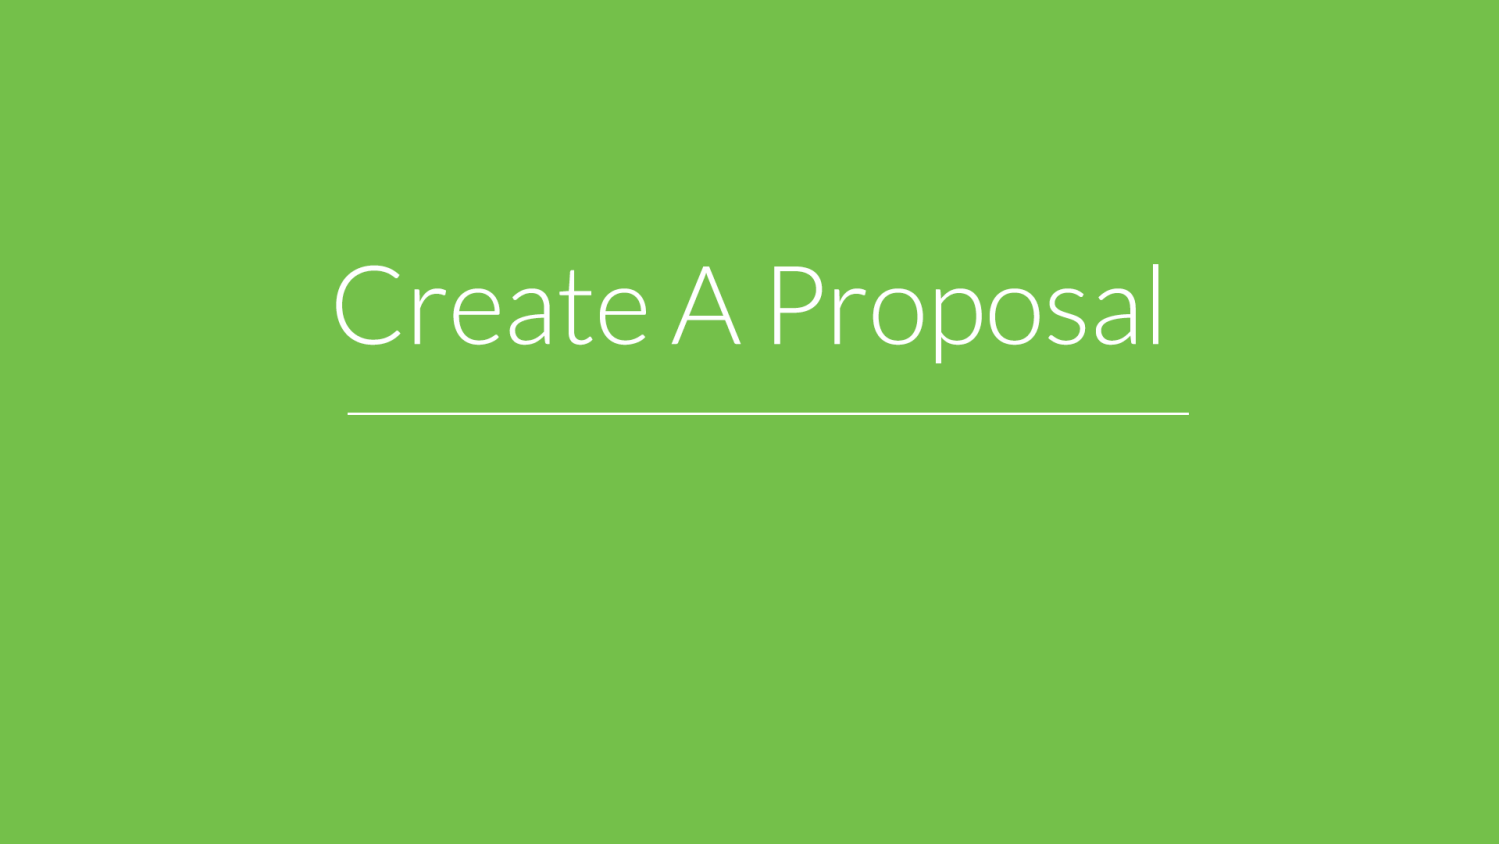 createproposal